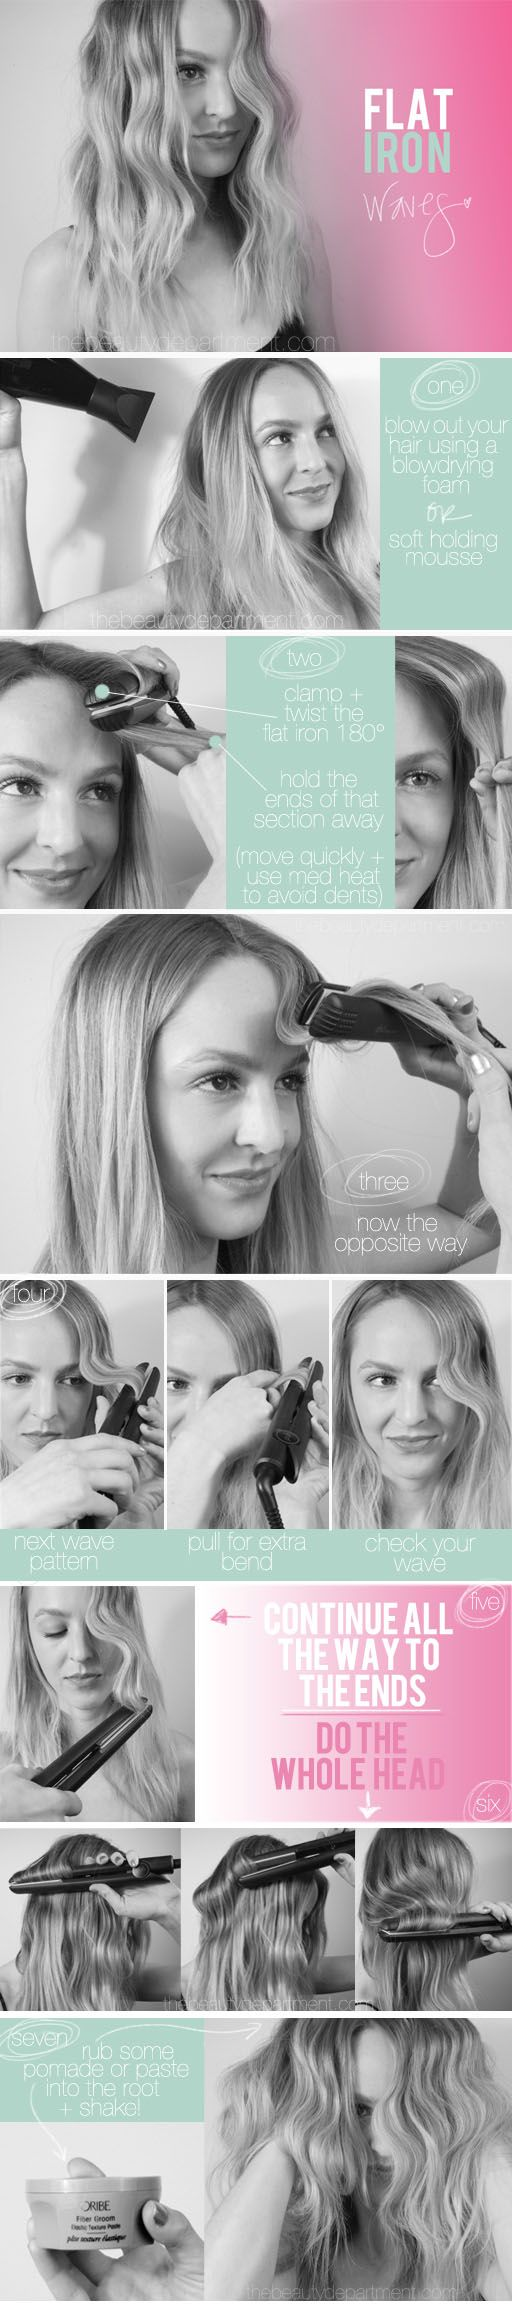 How to use your flat iron to create waves.